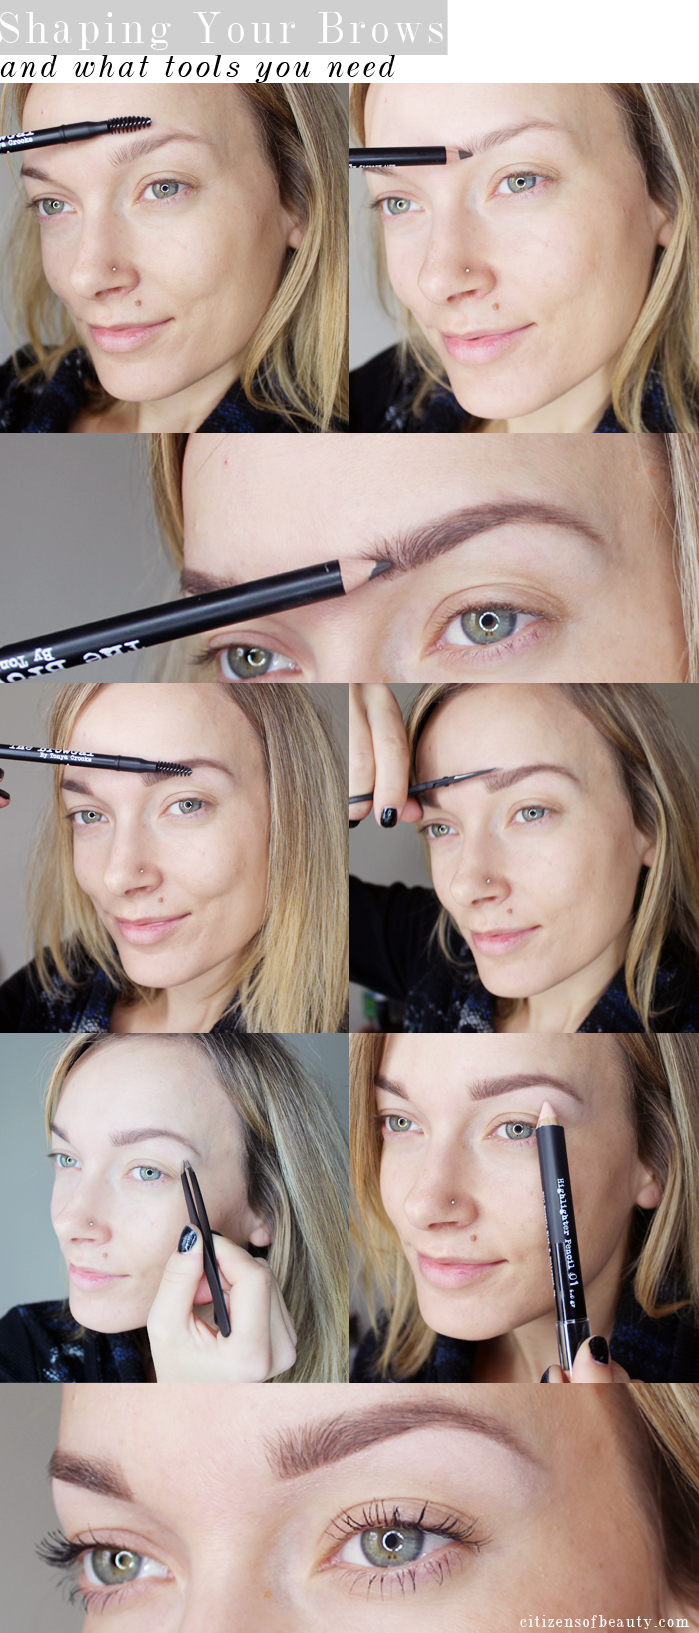 Shaping your brows with The BrowGal